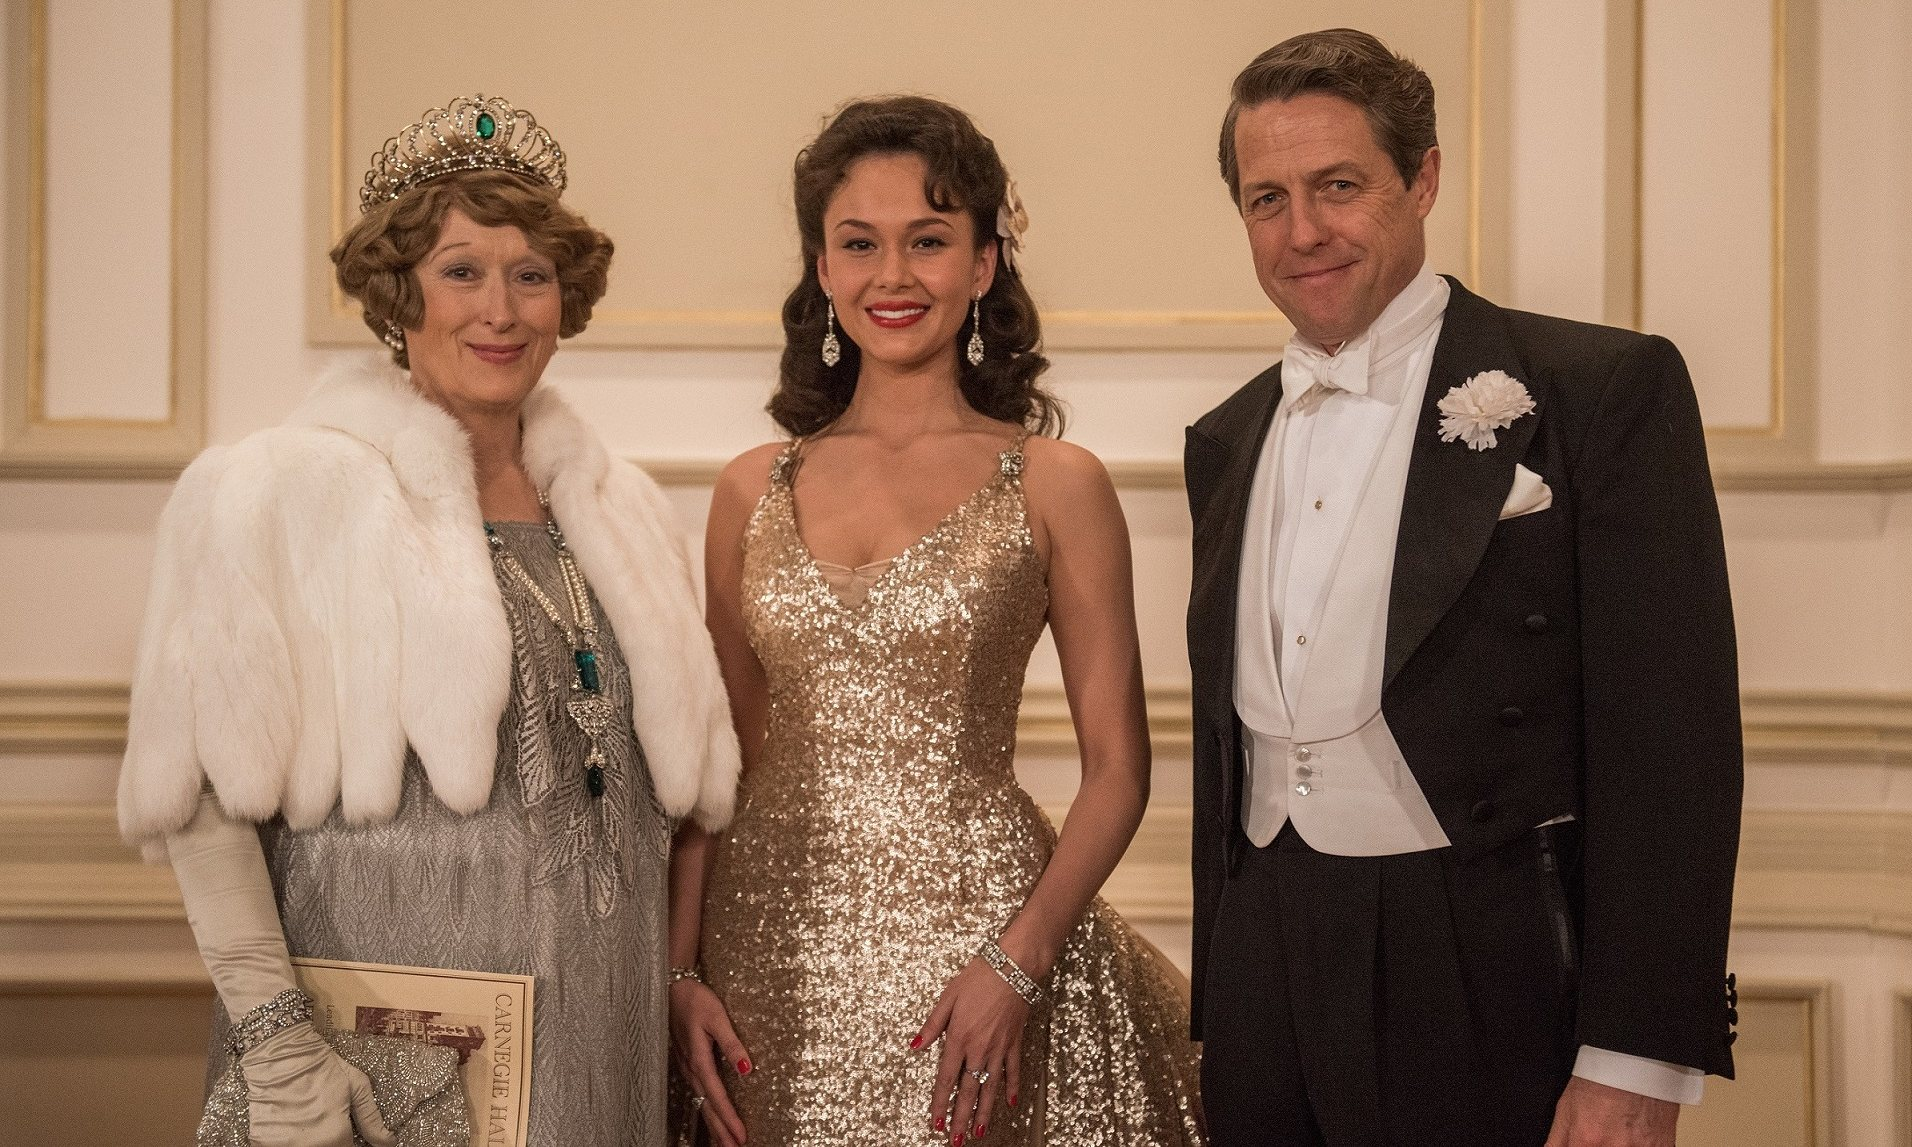 Streep, Garifullina and Grant in Florence Foster Jenkins